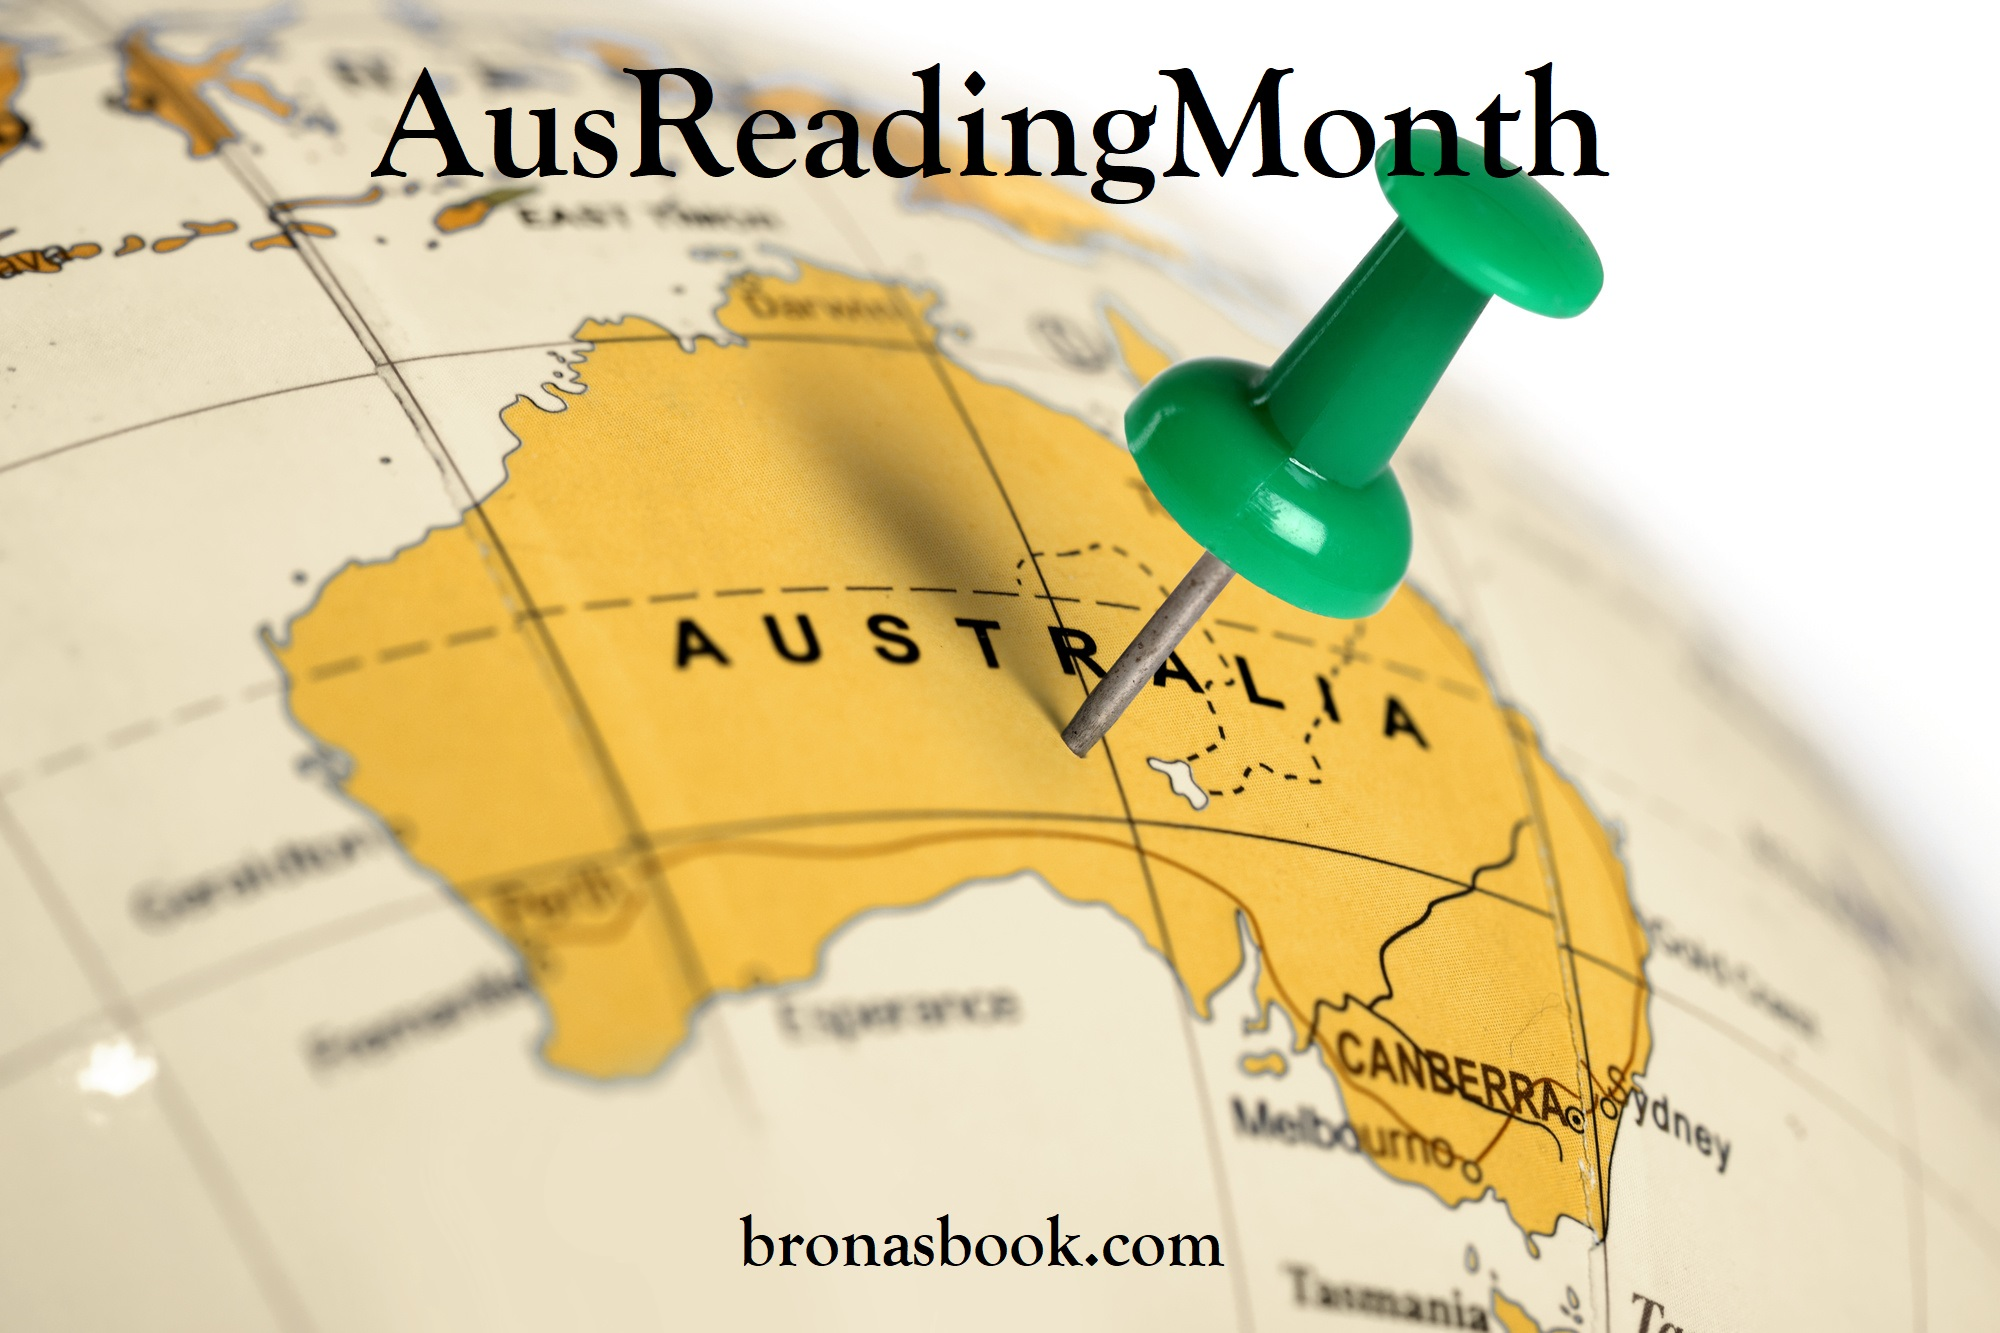 AusReadingMonth Badge